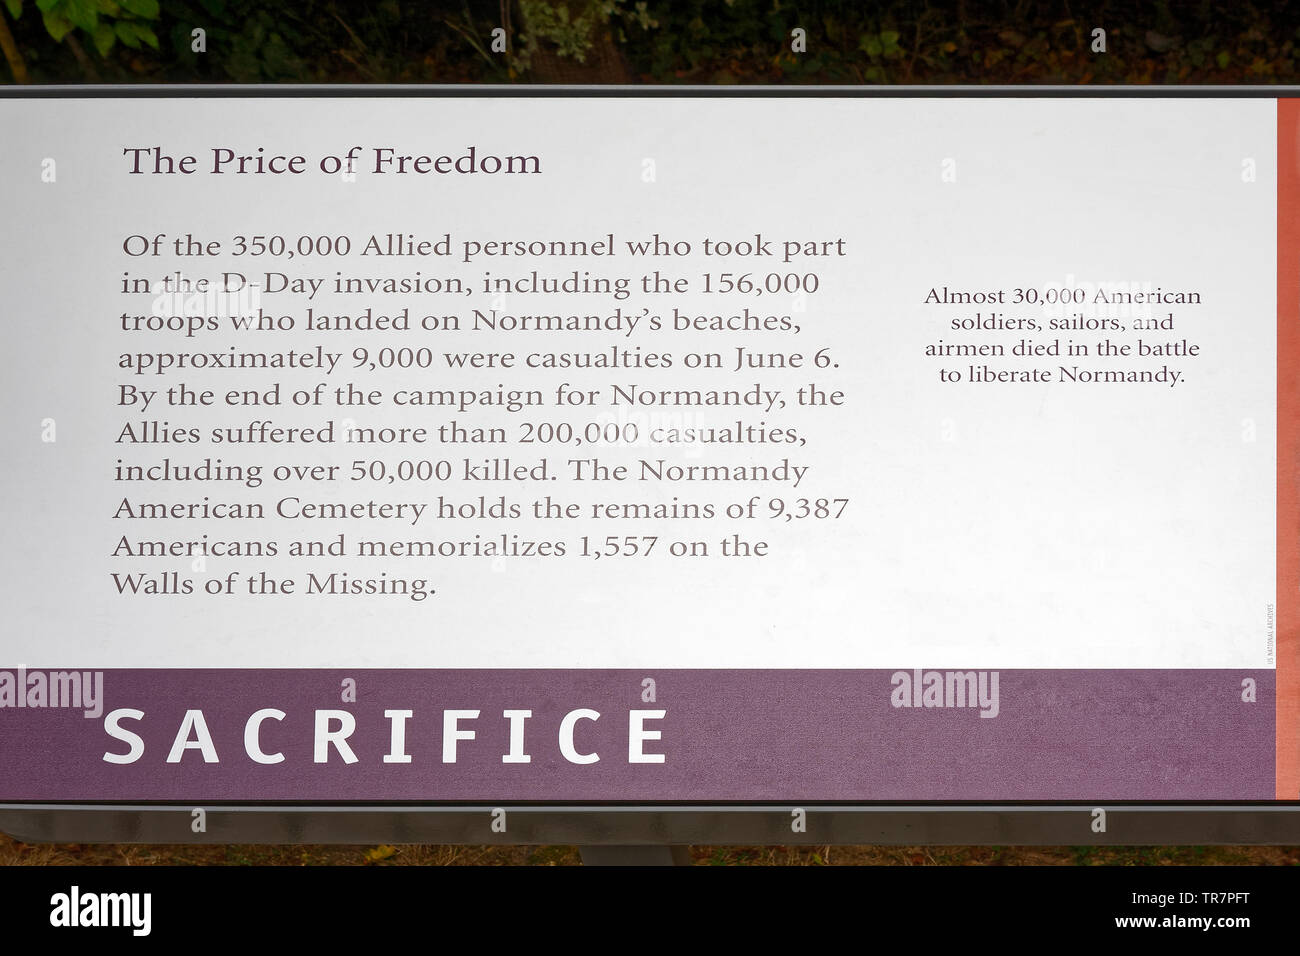 The Price of Freedom Plaque, Sacrifice, D-Day Invasion, WWII; statistical information, sobering, military, Normandy; France; summer; horizontal - Stock Image